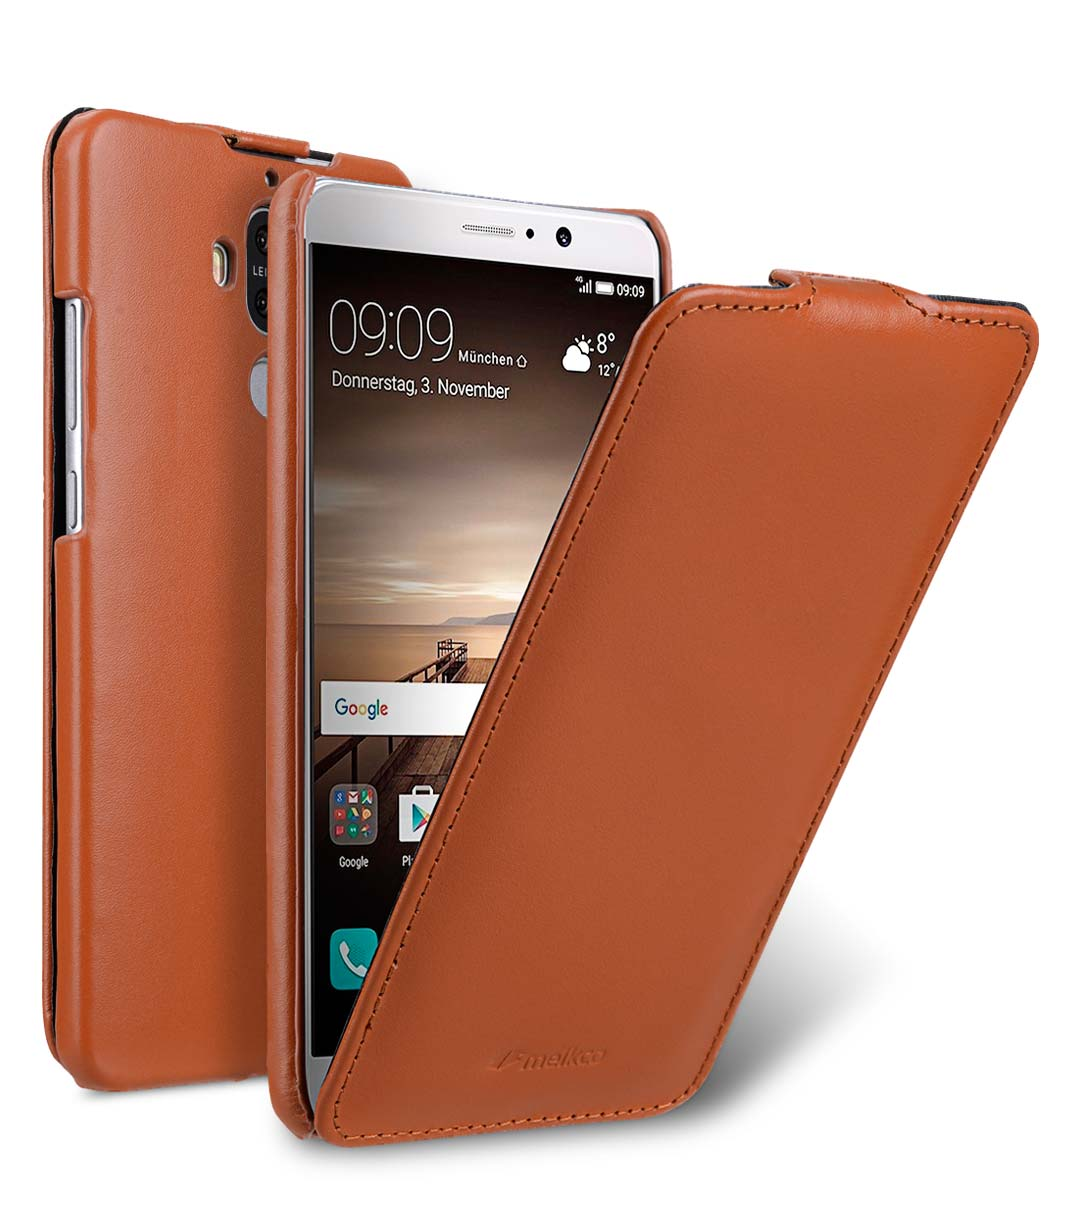 Premium Leather Case for Huawei Mate 9 - Jacka Type (Brown)